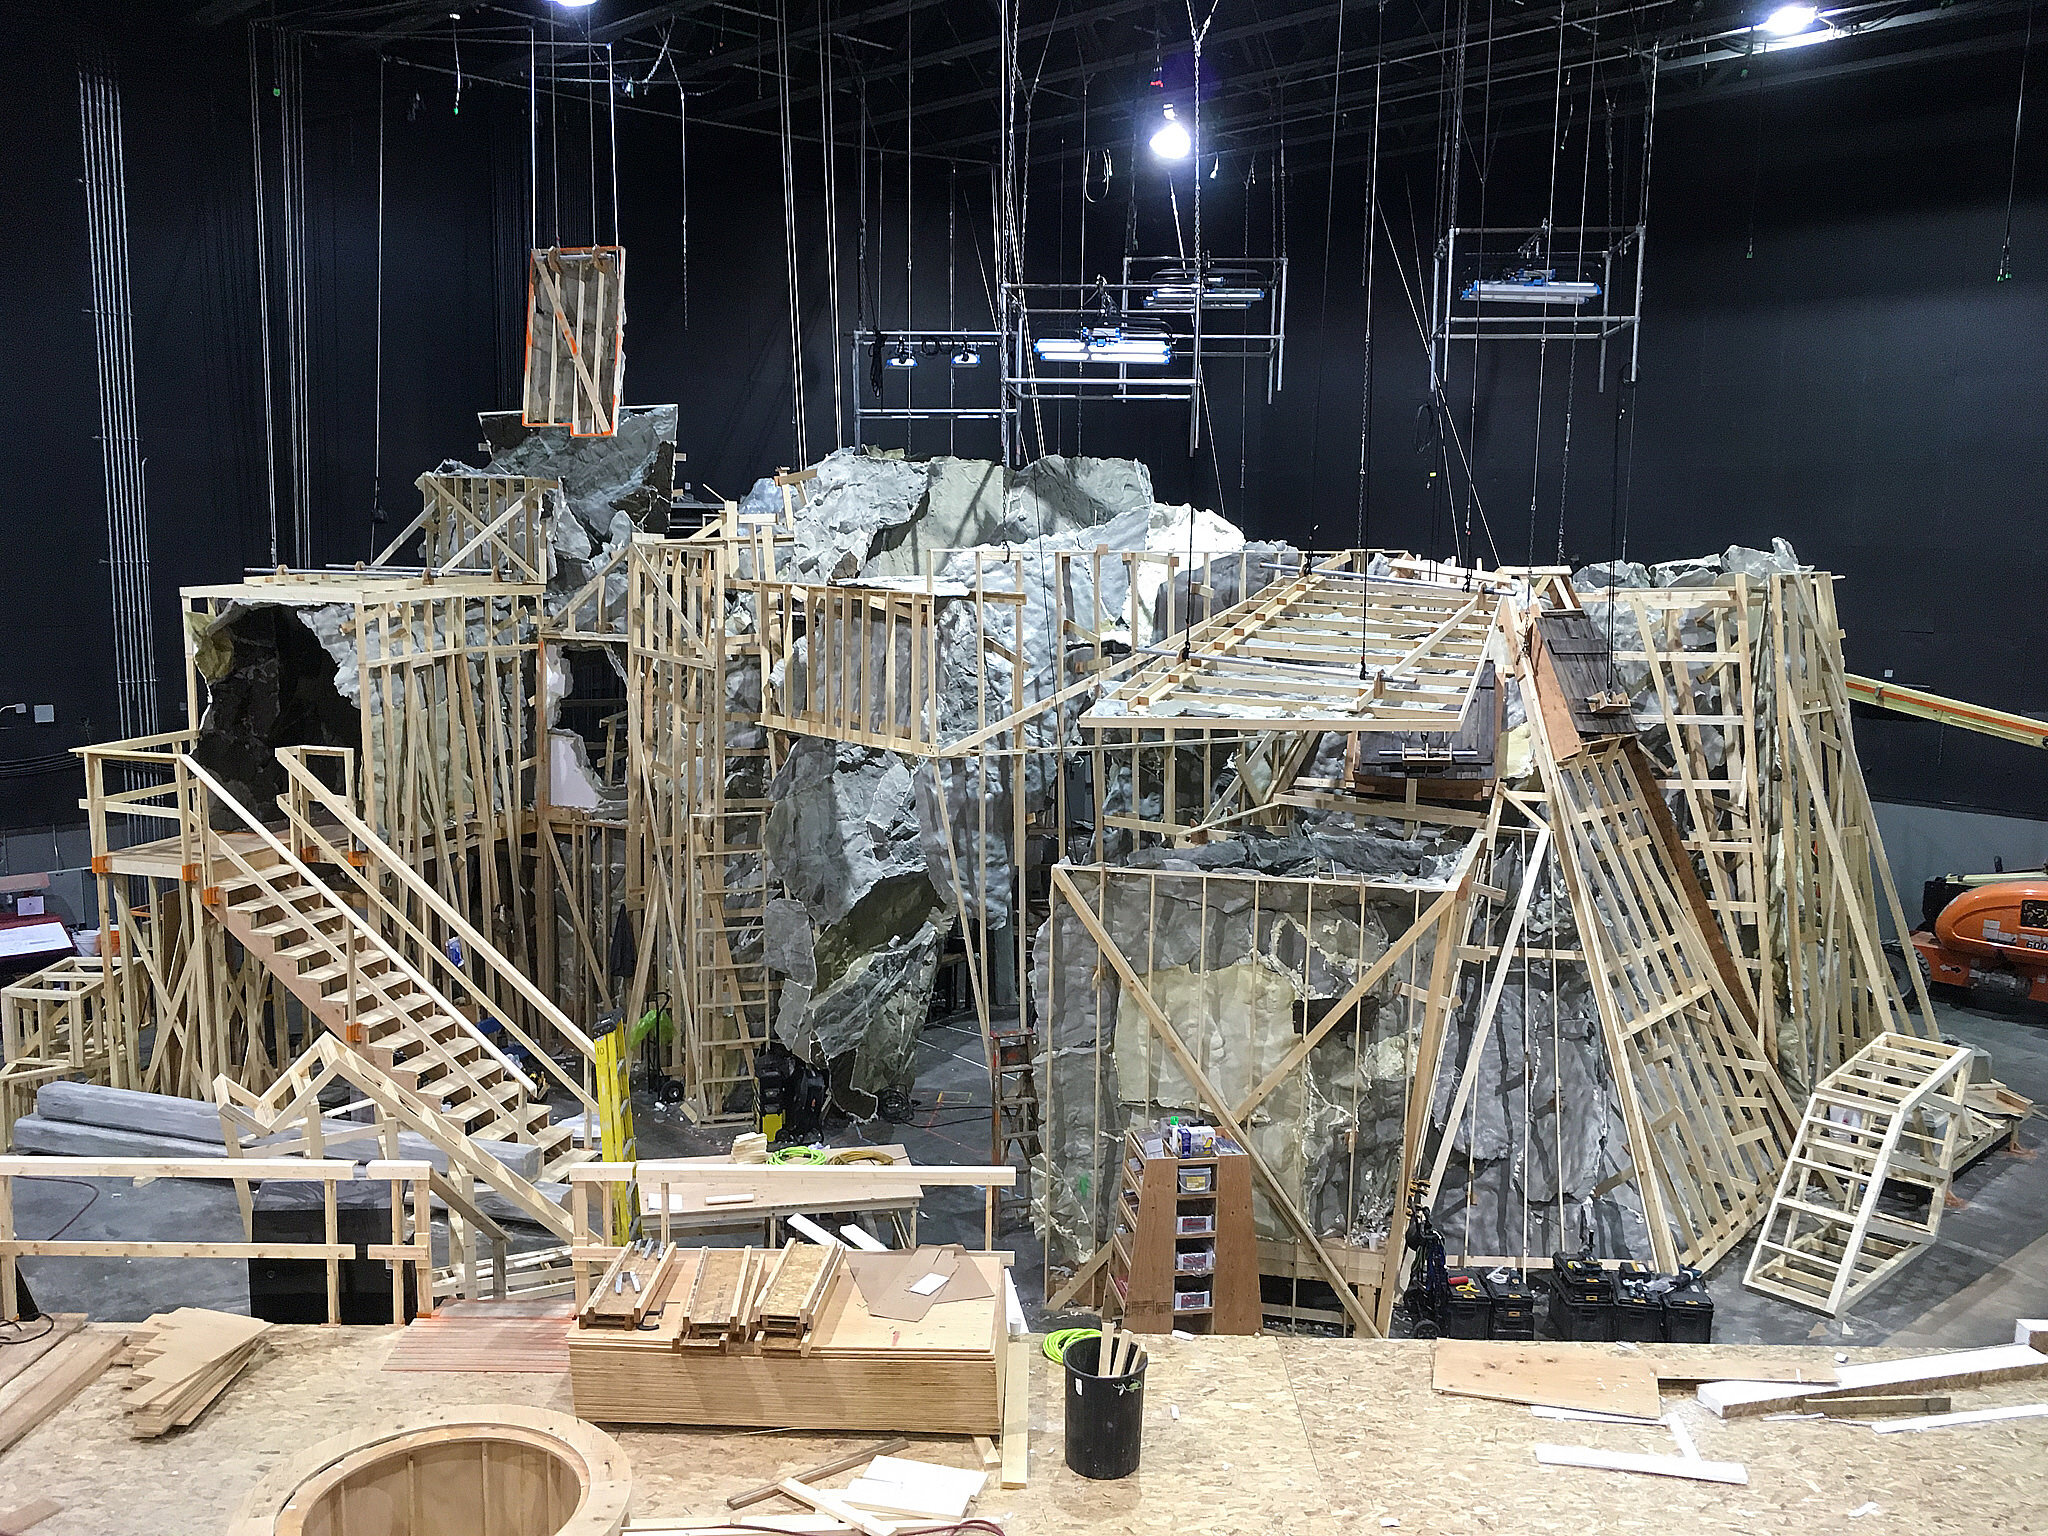 I think it's sometimes helpful to look at the structure of the outside of a set to understand the dimensions and functionality of the inside. Here is the outside of Hades lair showing entrances and exits, wild sections and lighting elements.